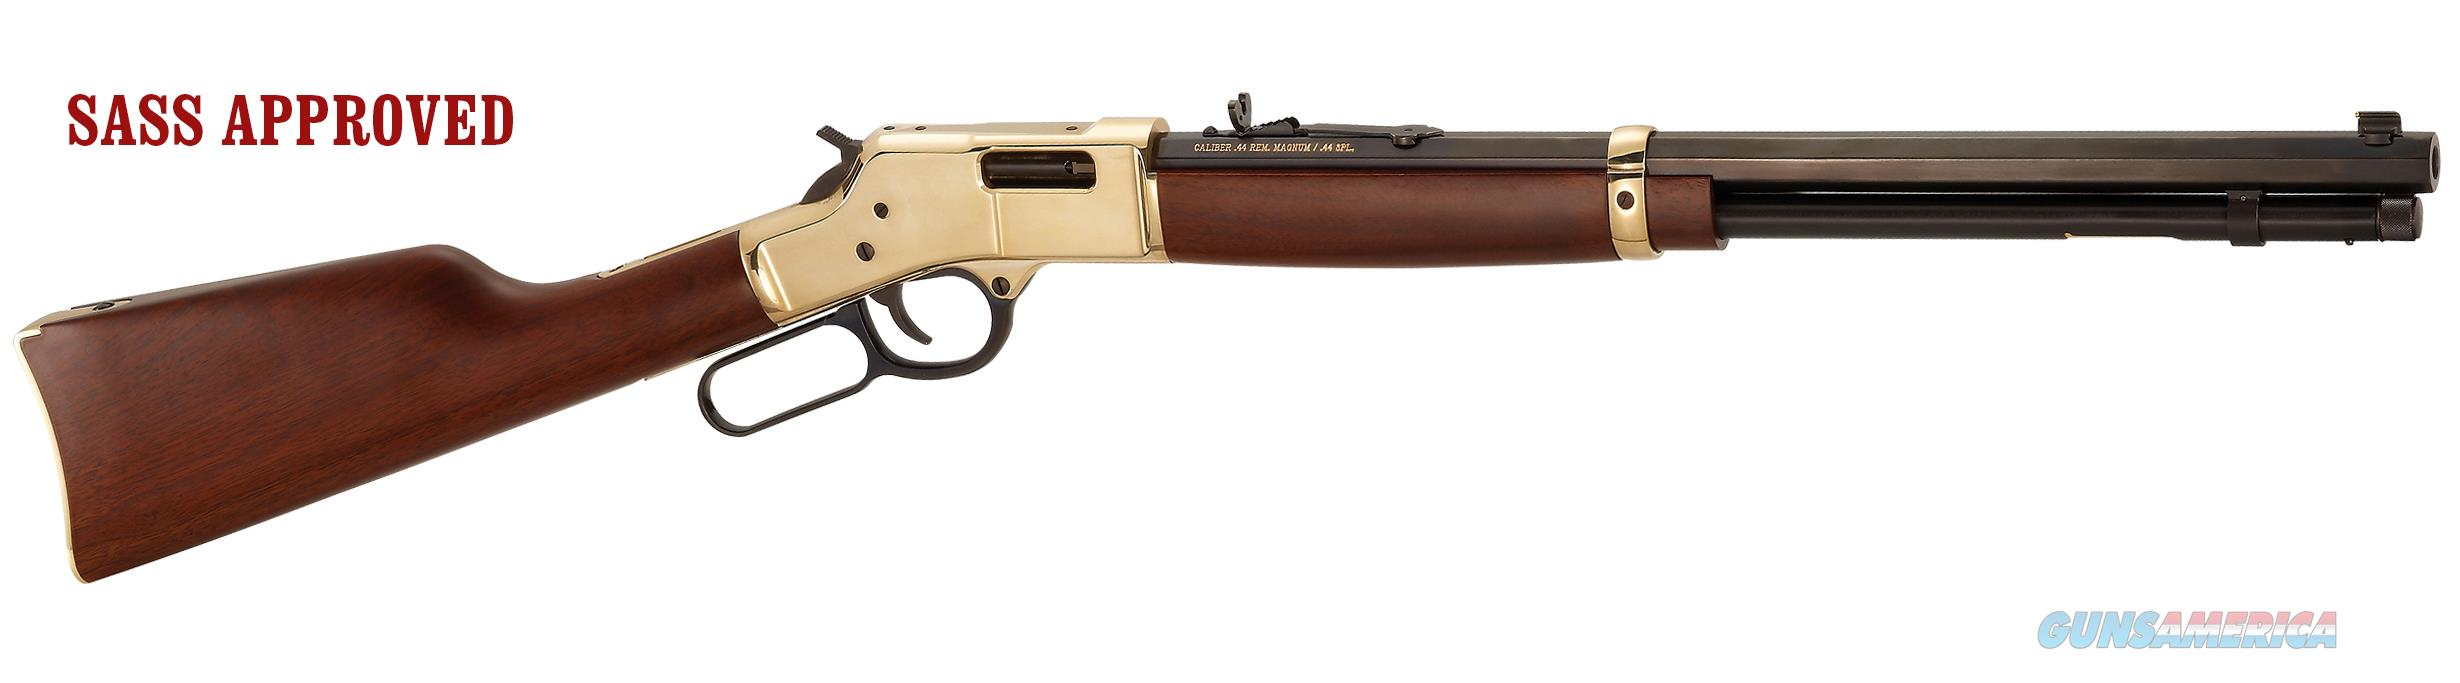 "Henry Big Boy Lever Action 357 Magnum 20"" 10+1 - New in Box  Guns > Rifles > Henry Rifle Company"